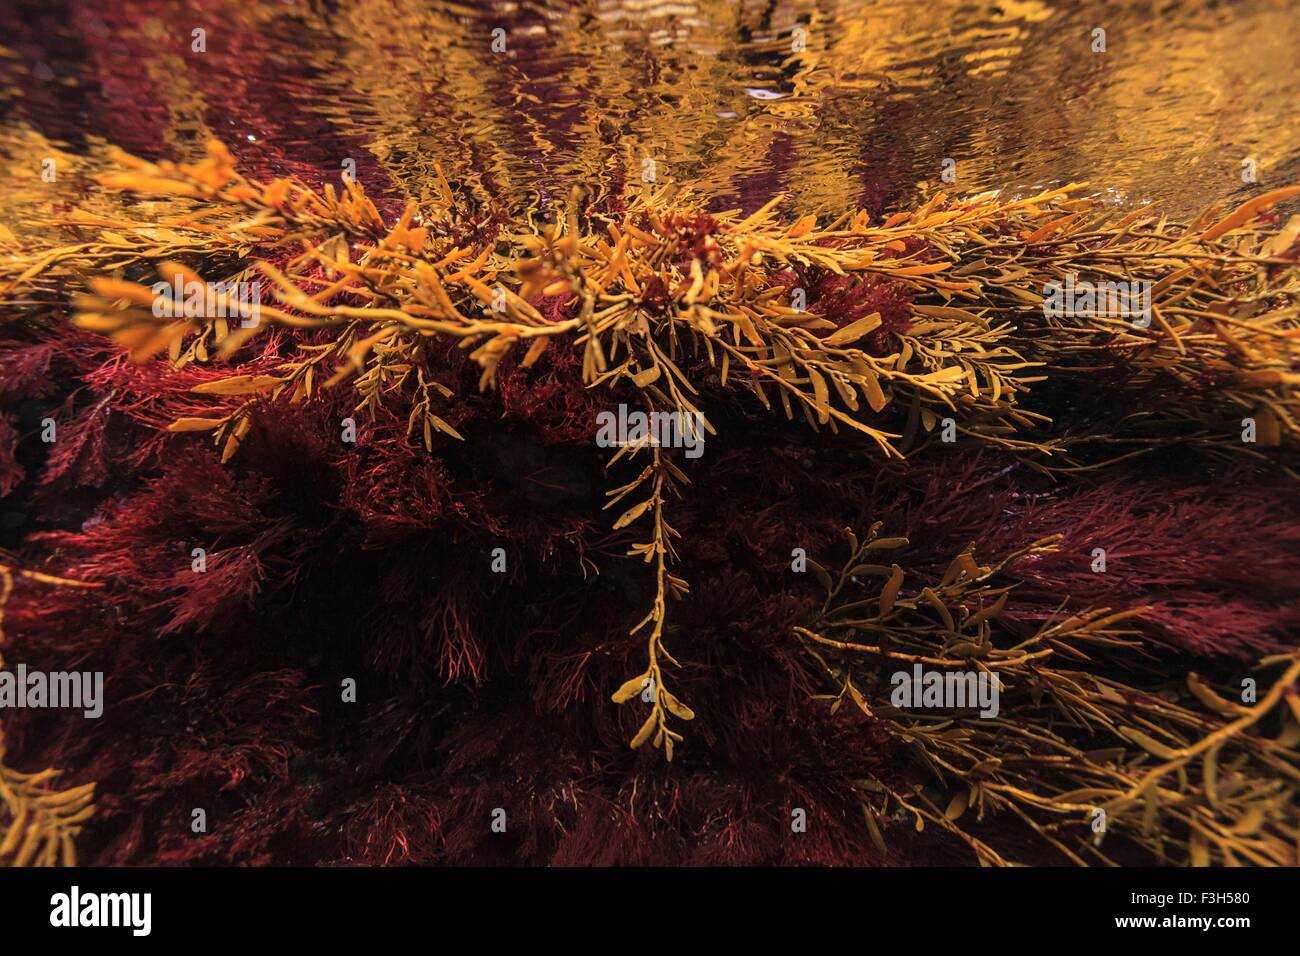 Red and brown New Zealand seaweeds, Intertidal Zone, Poor Knights Island Marine Reserve, New Zealand - Stock Image